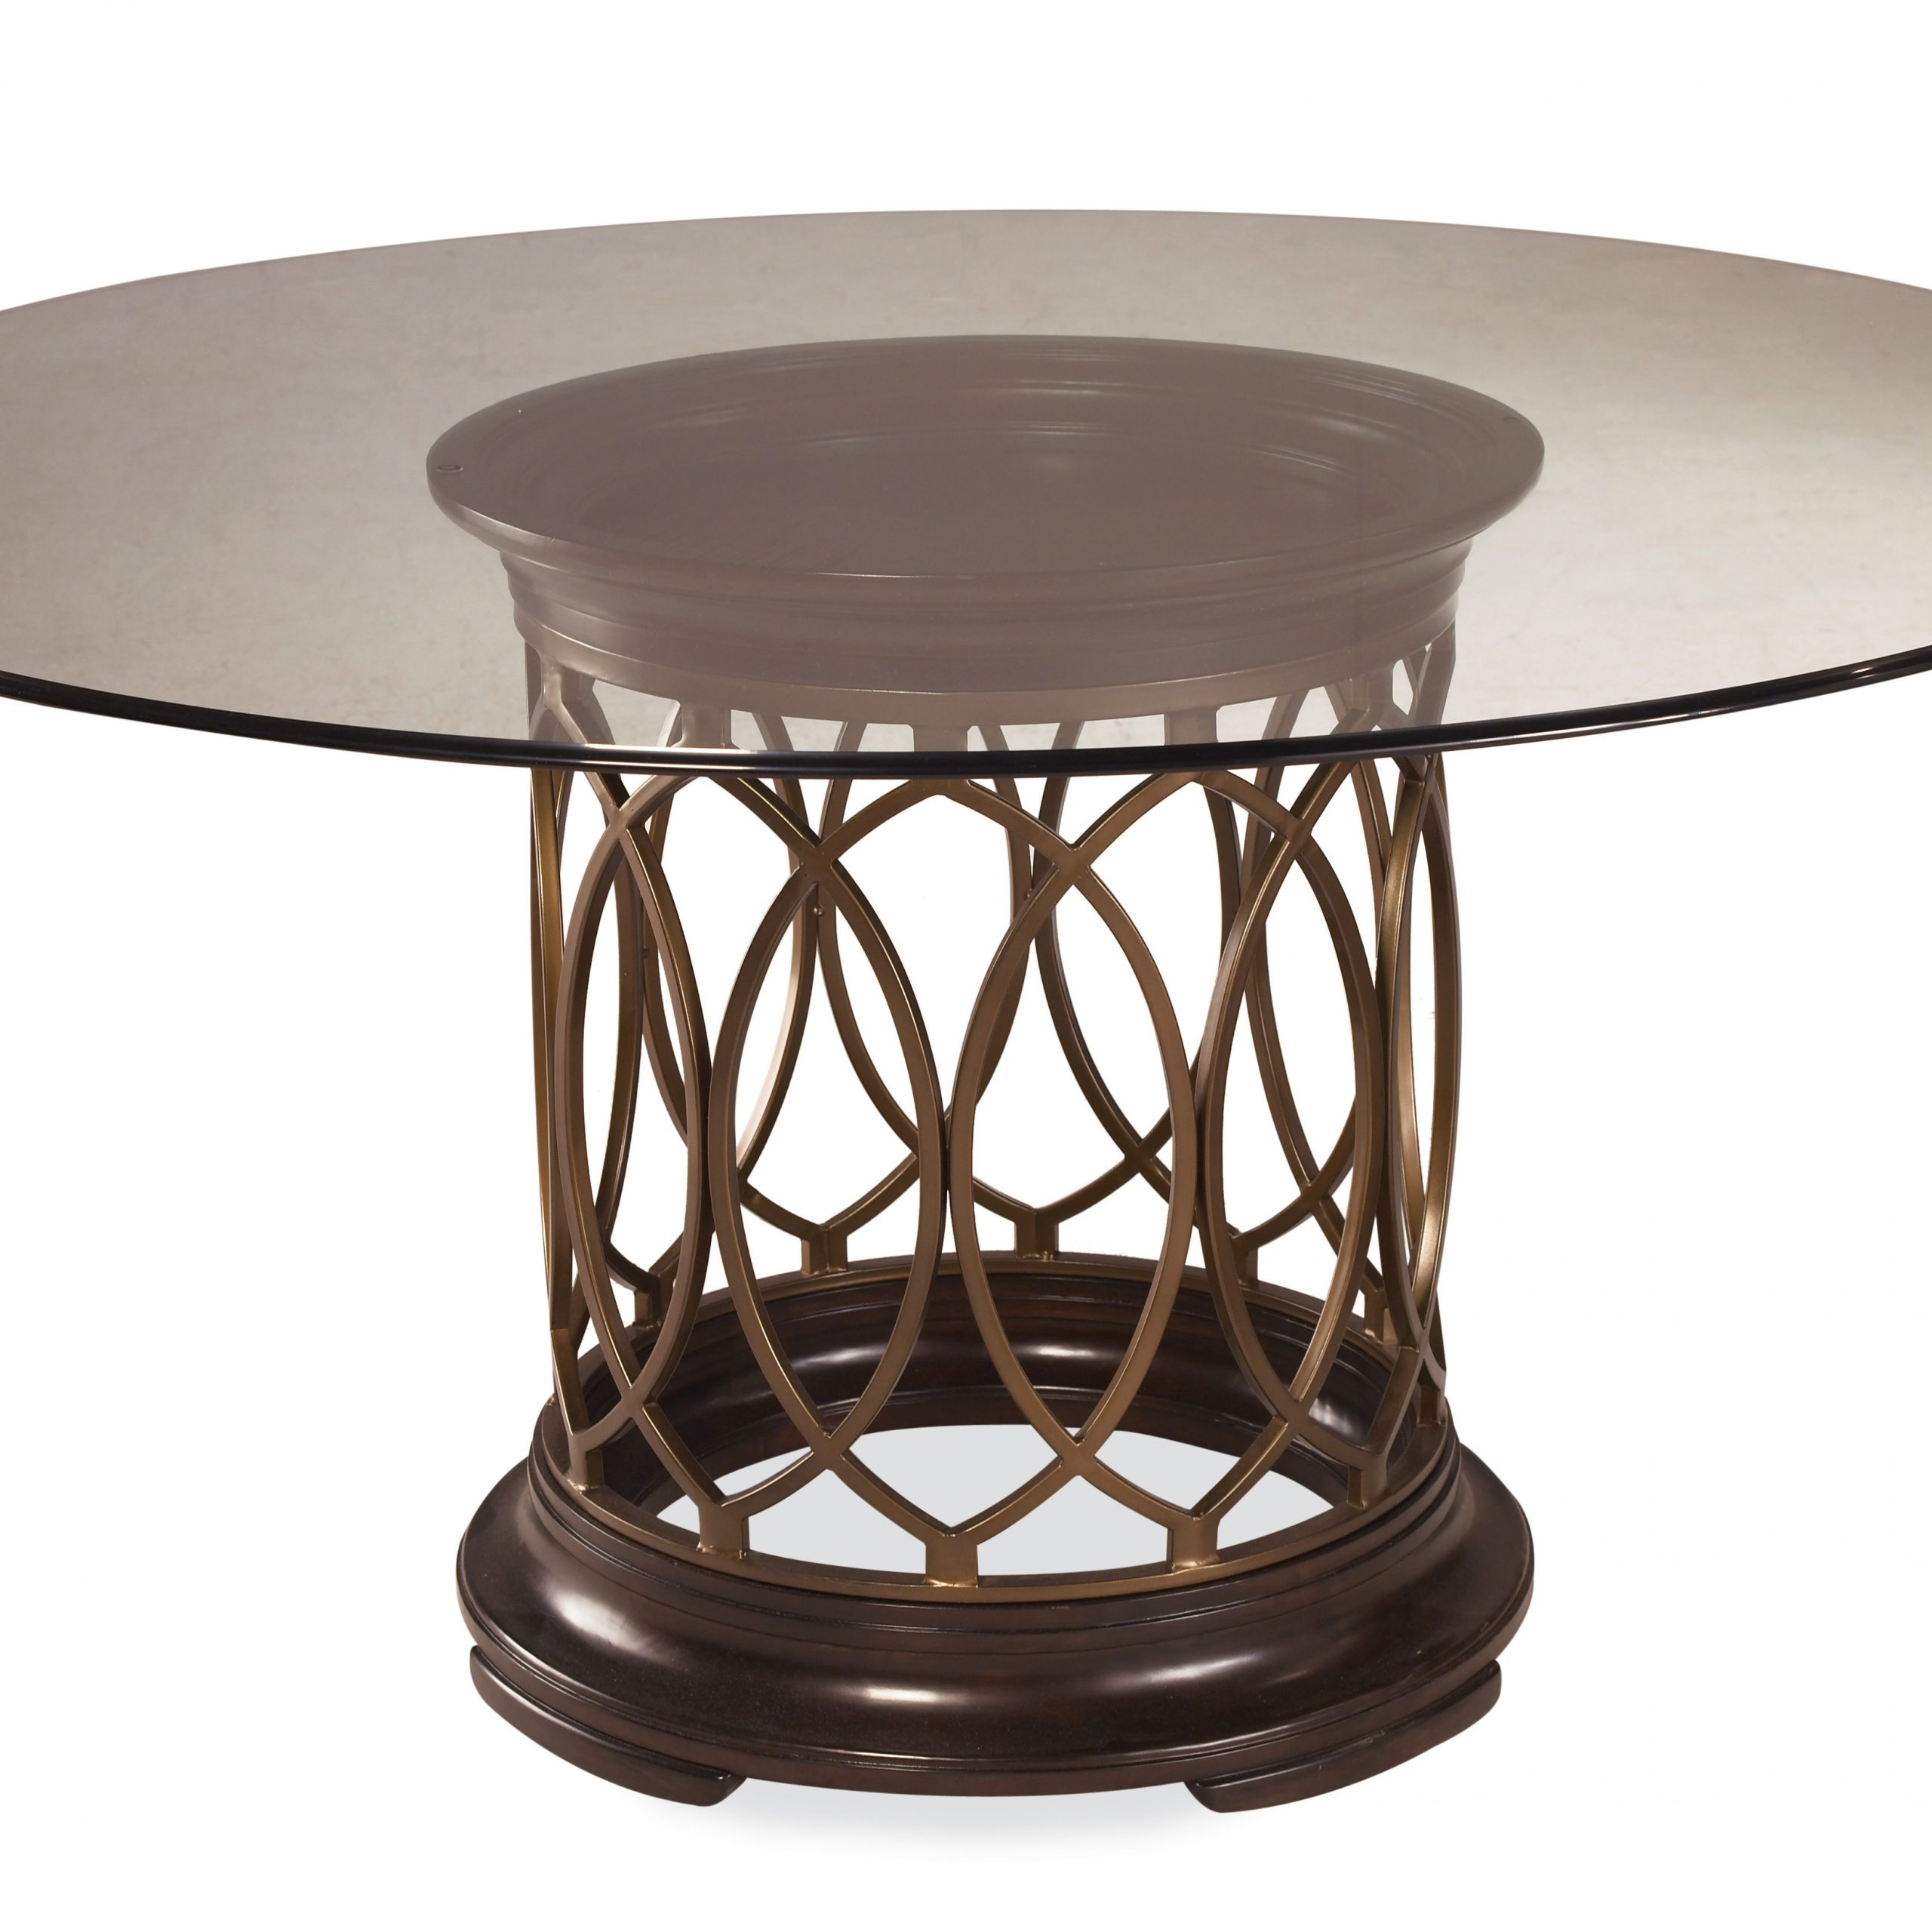 Dining Table Bases For Glass Tops (View 28 of 30)